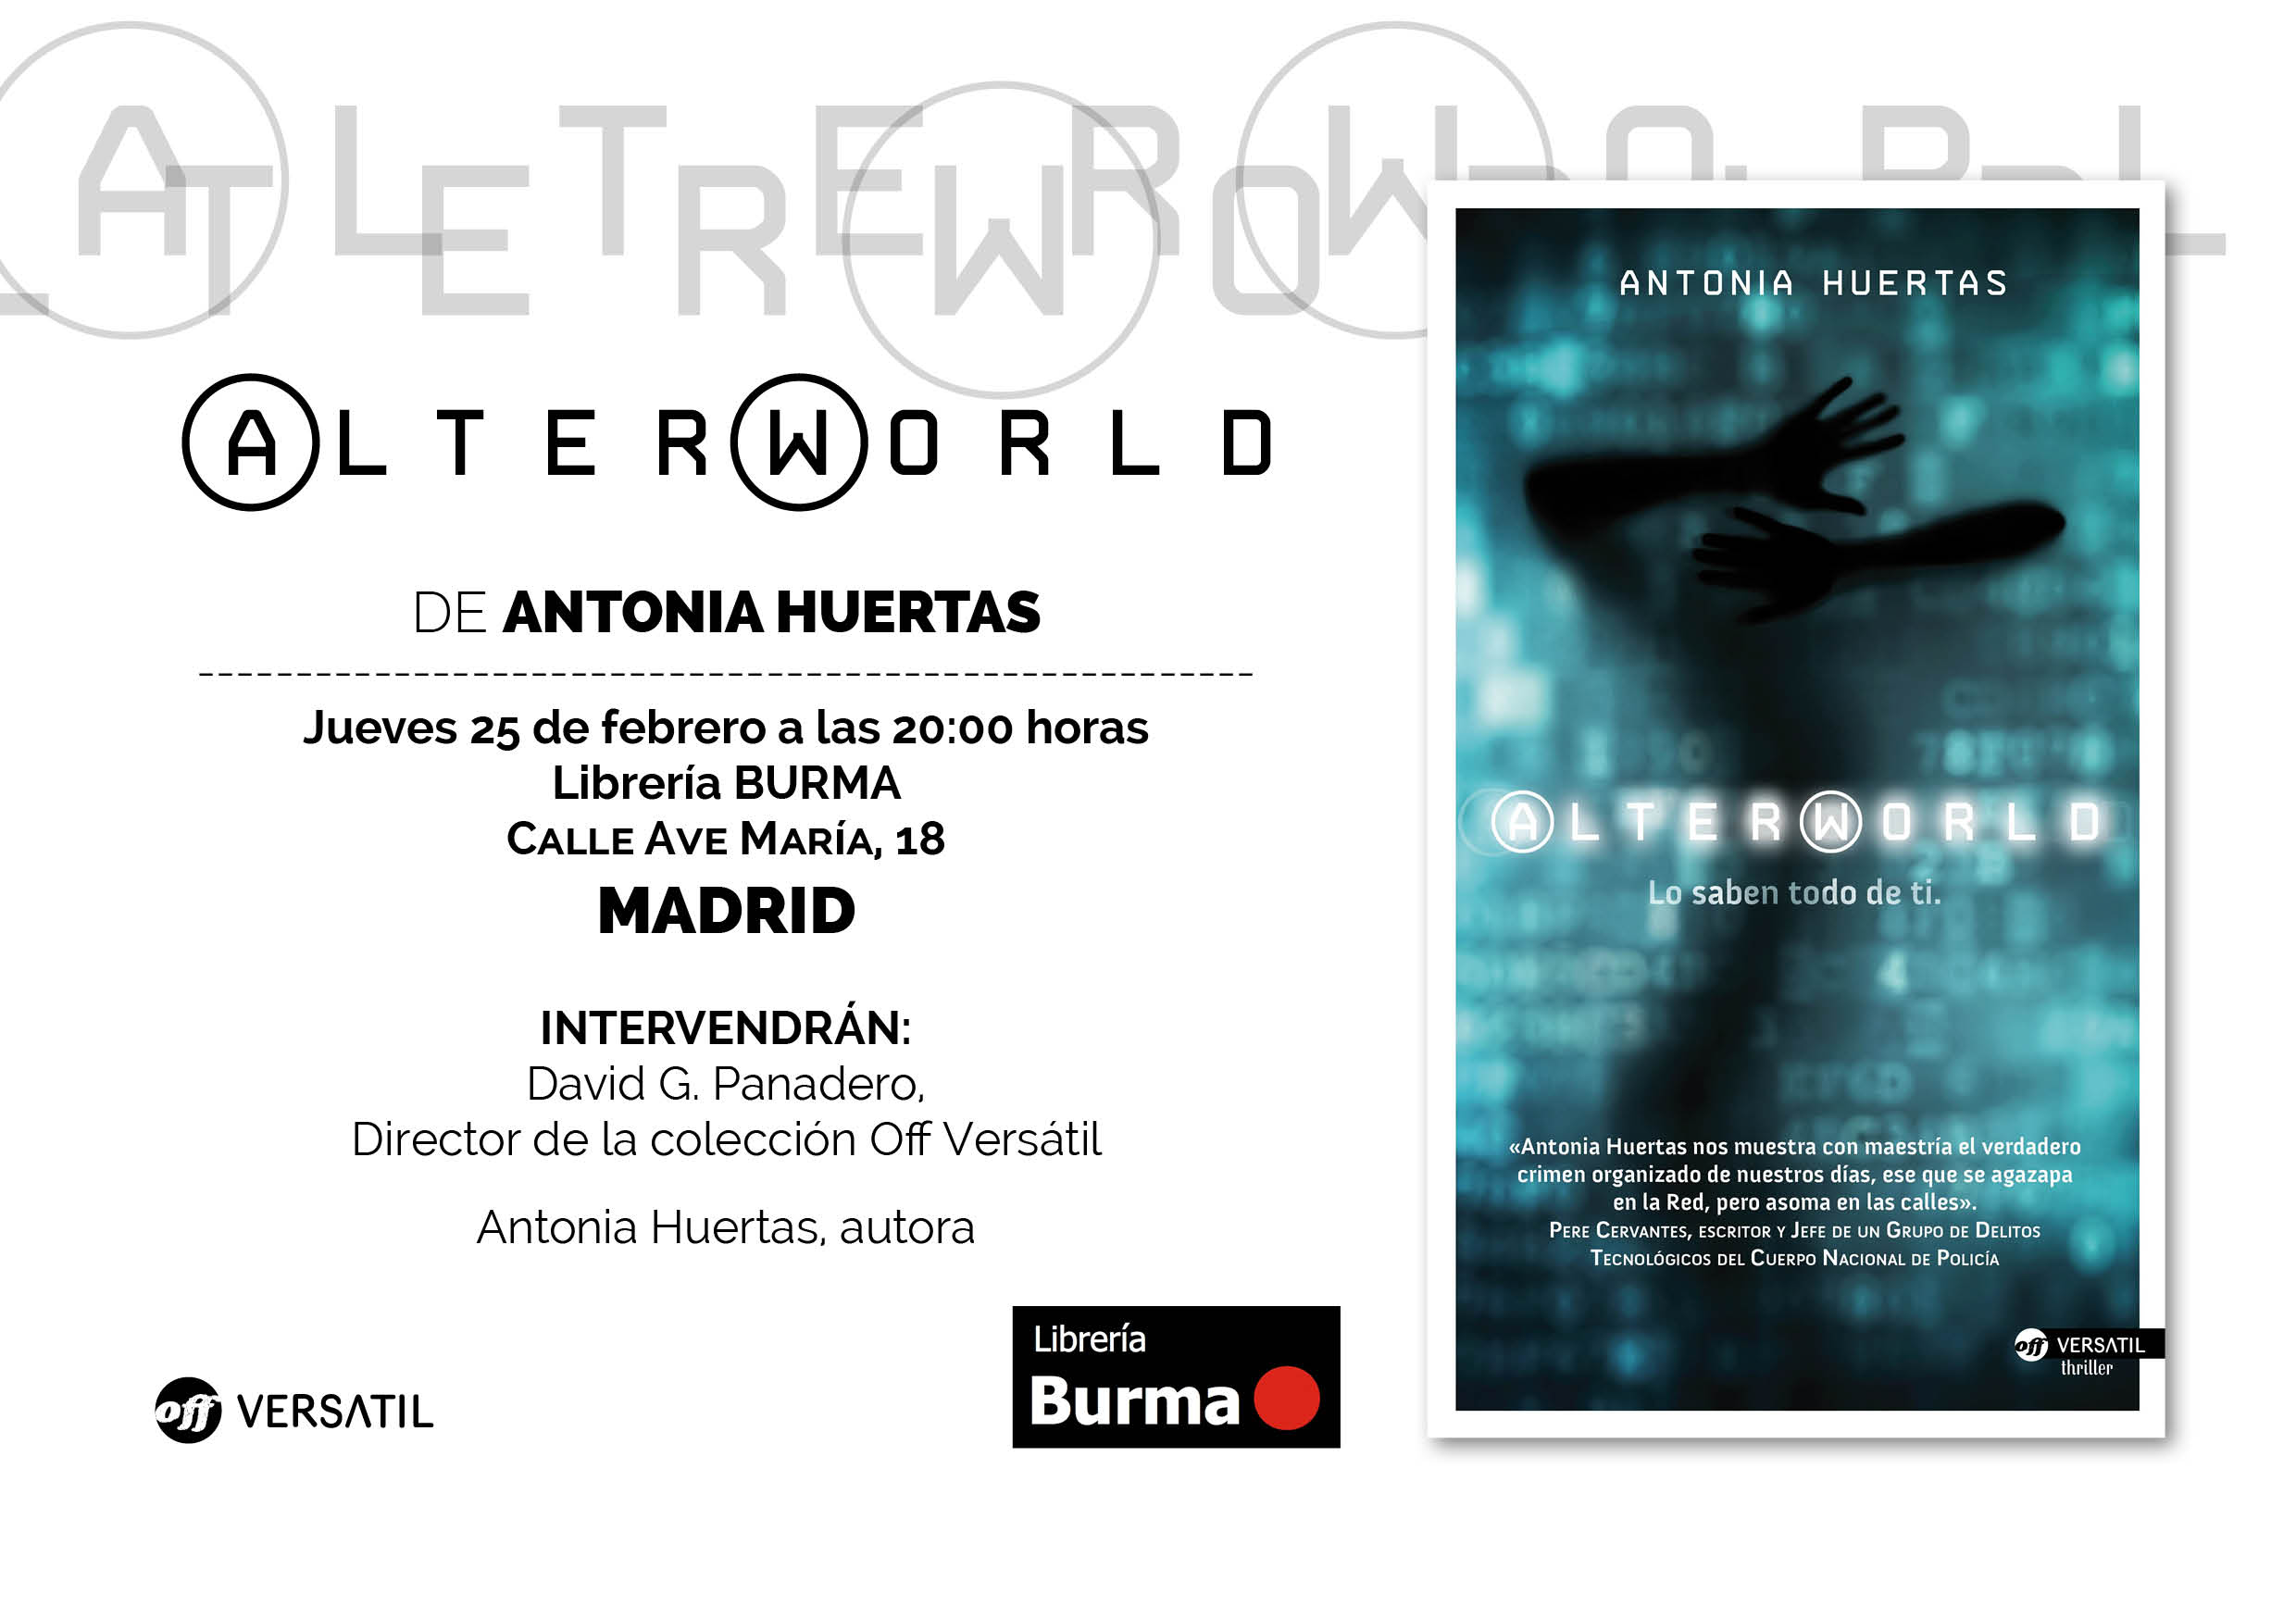 Alterworld-madrid